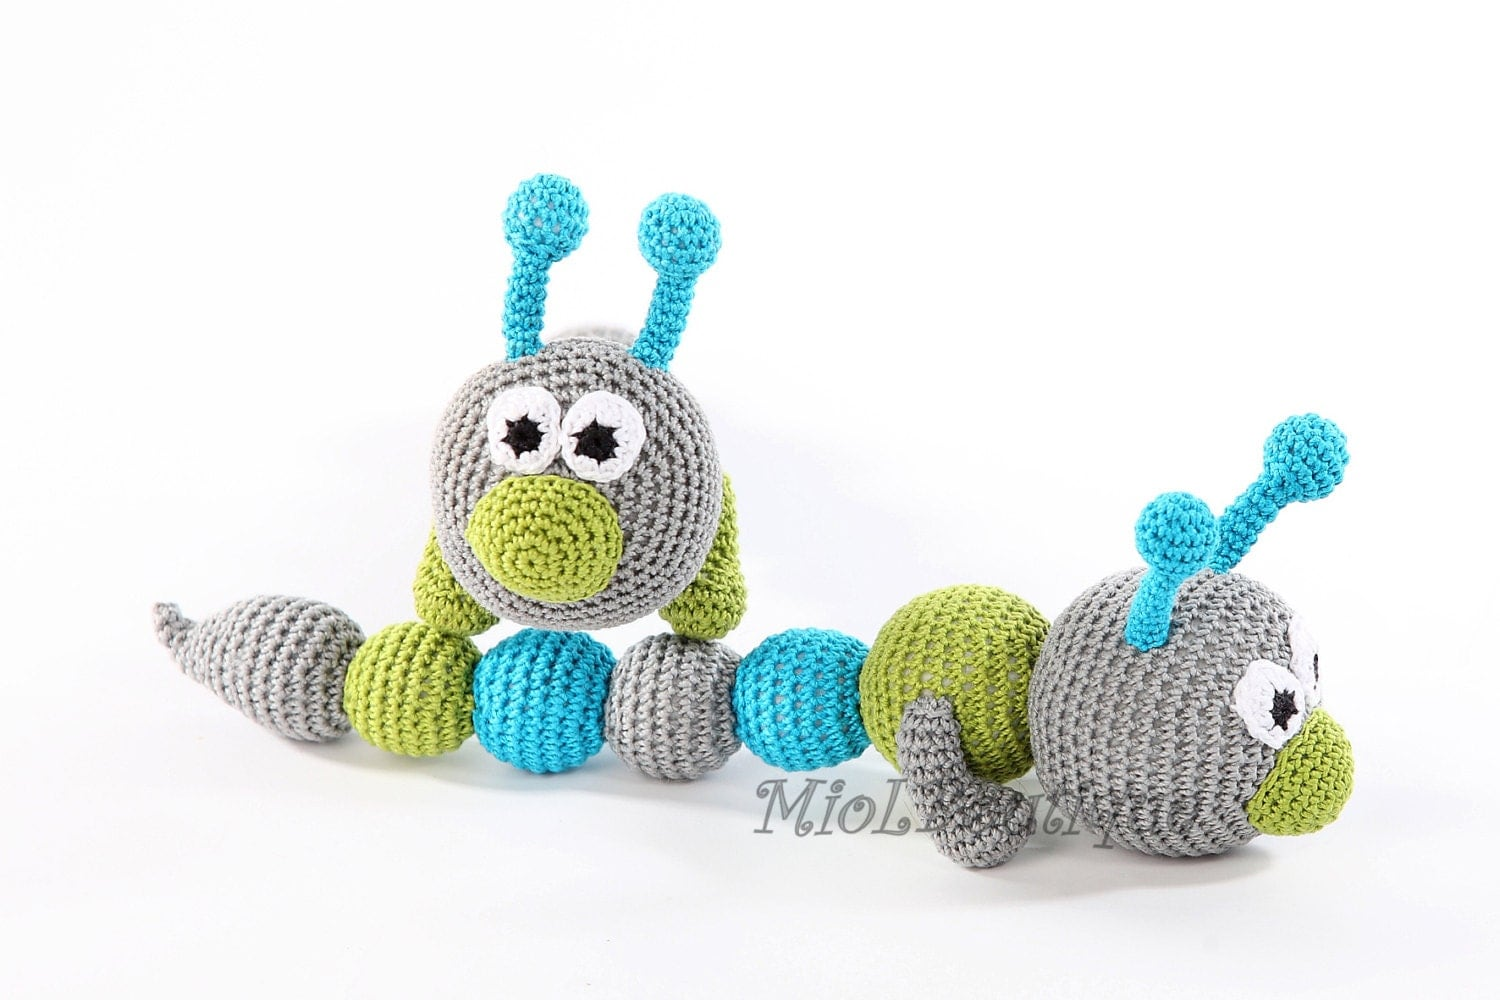 Crochet Toy Rattle Teething Baby Toy Crochet Baby Toy Grasping